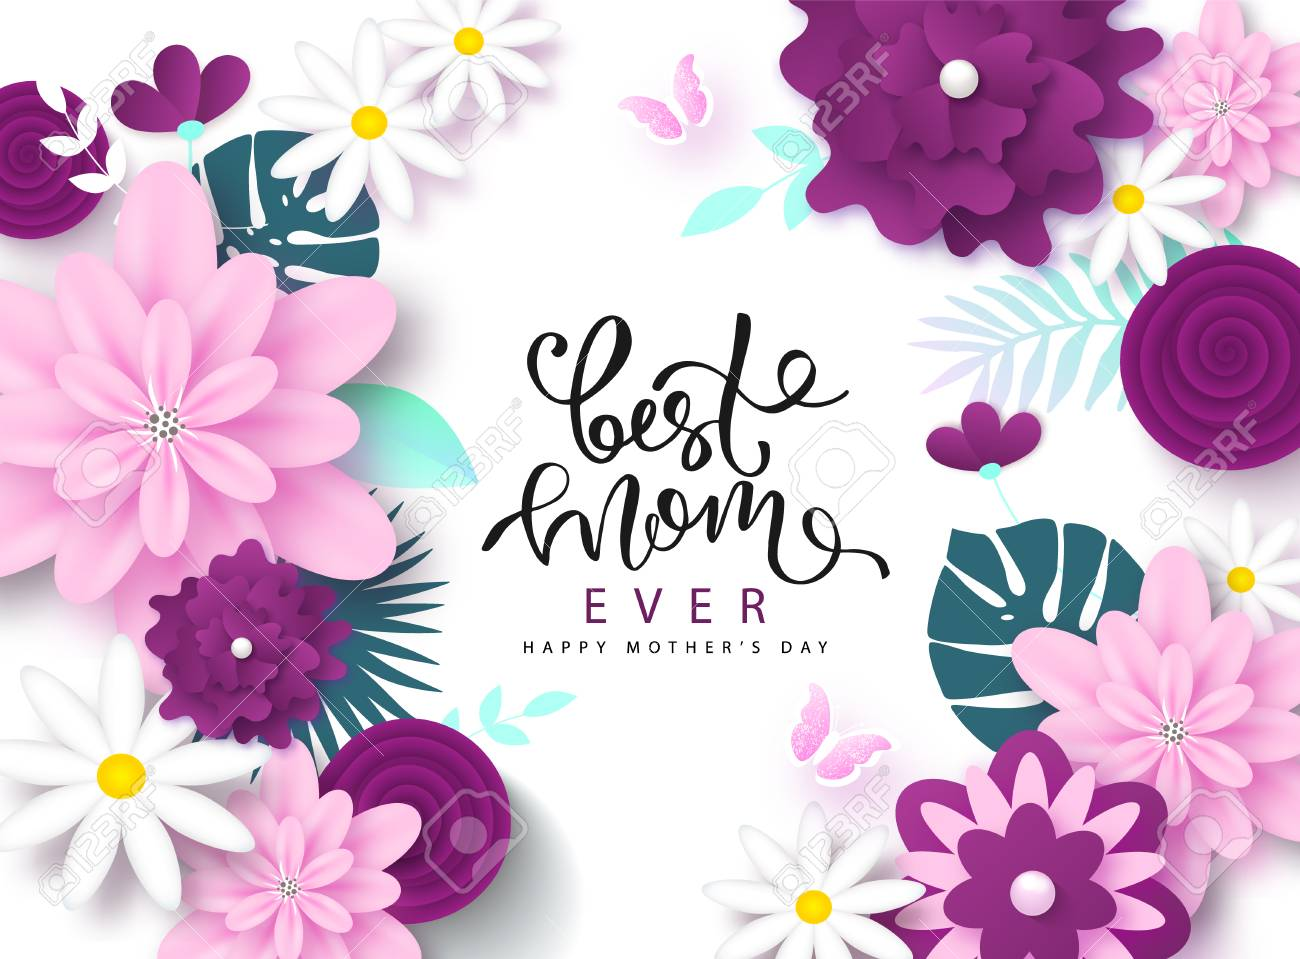 Happy Mothers Day Greeting Card Design Royalty Free Cliparts